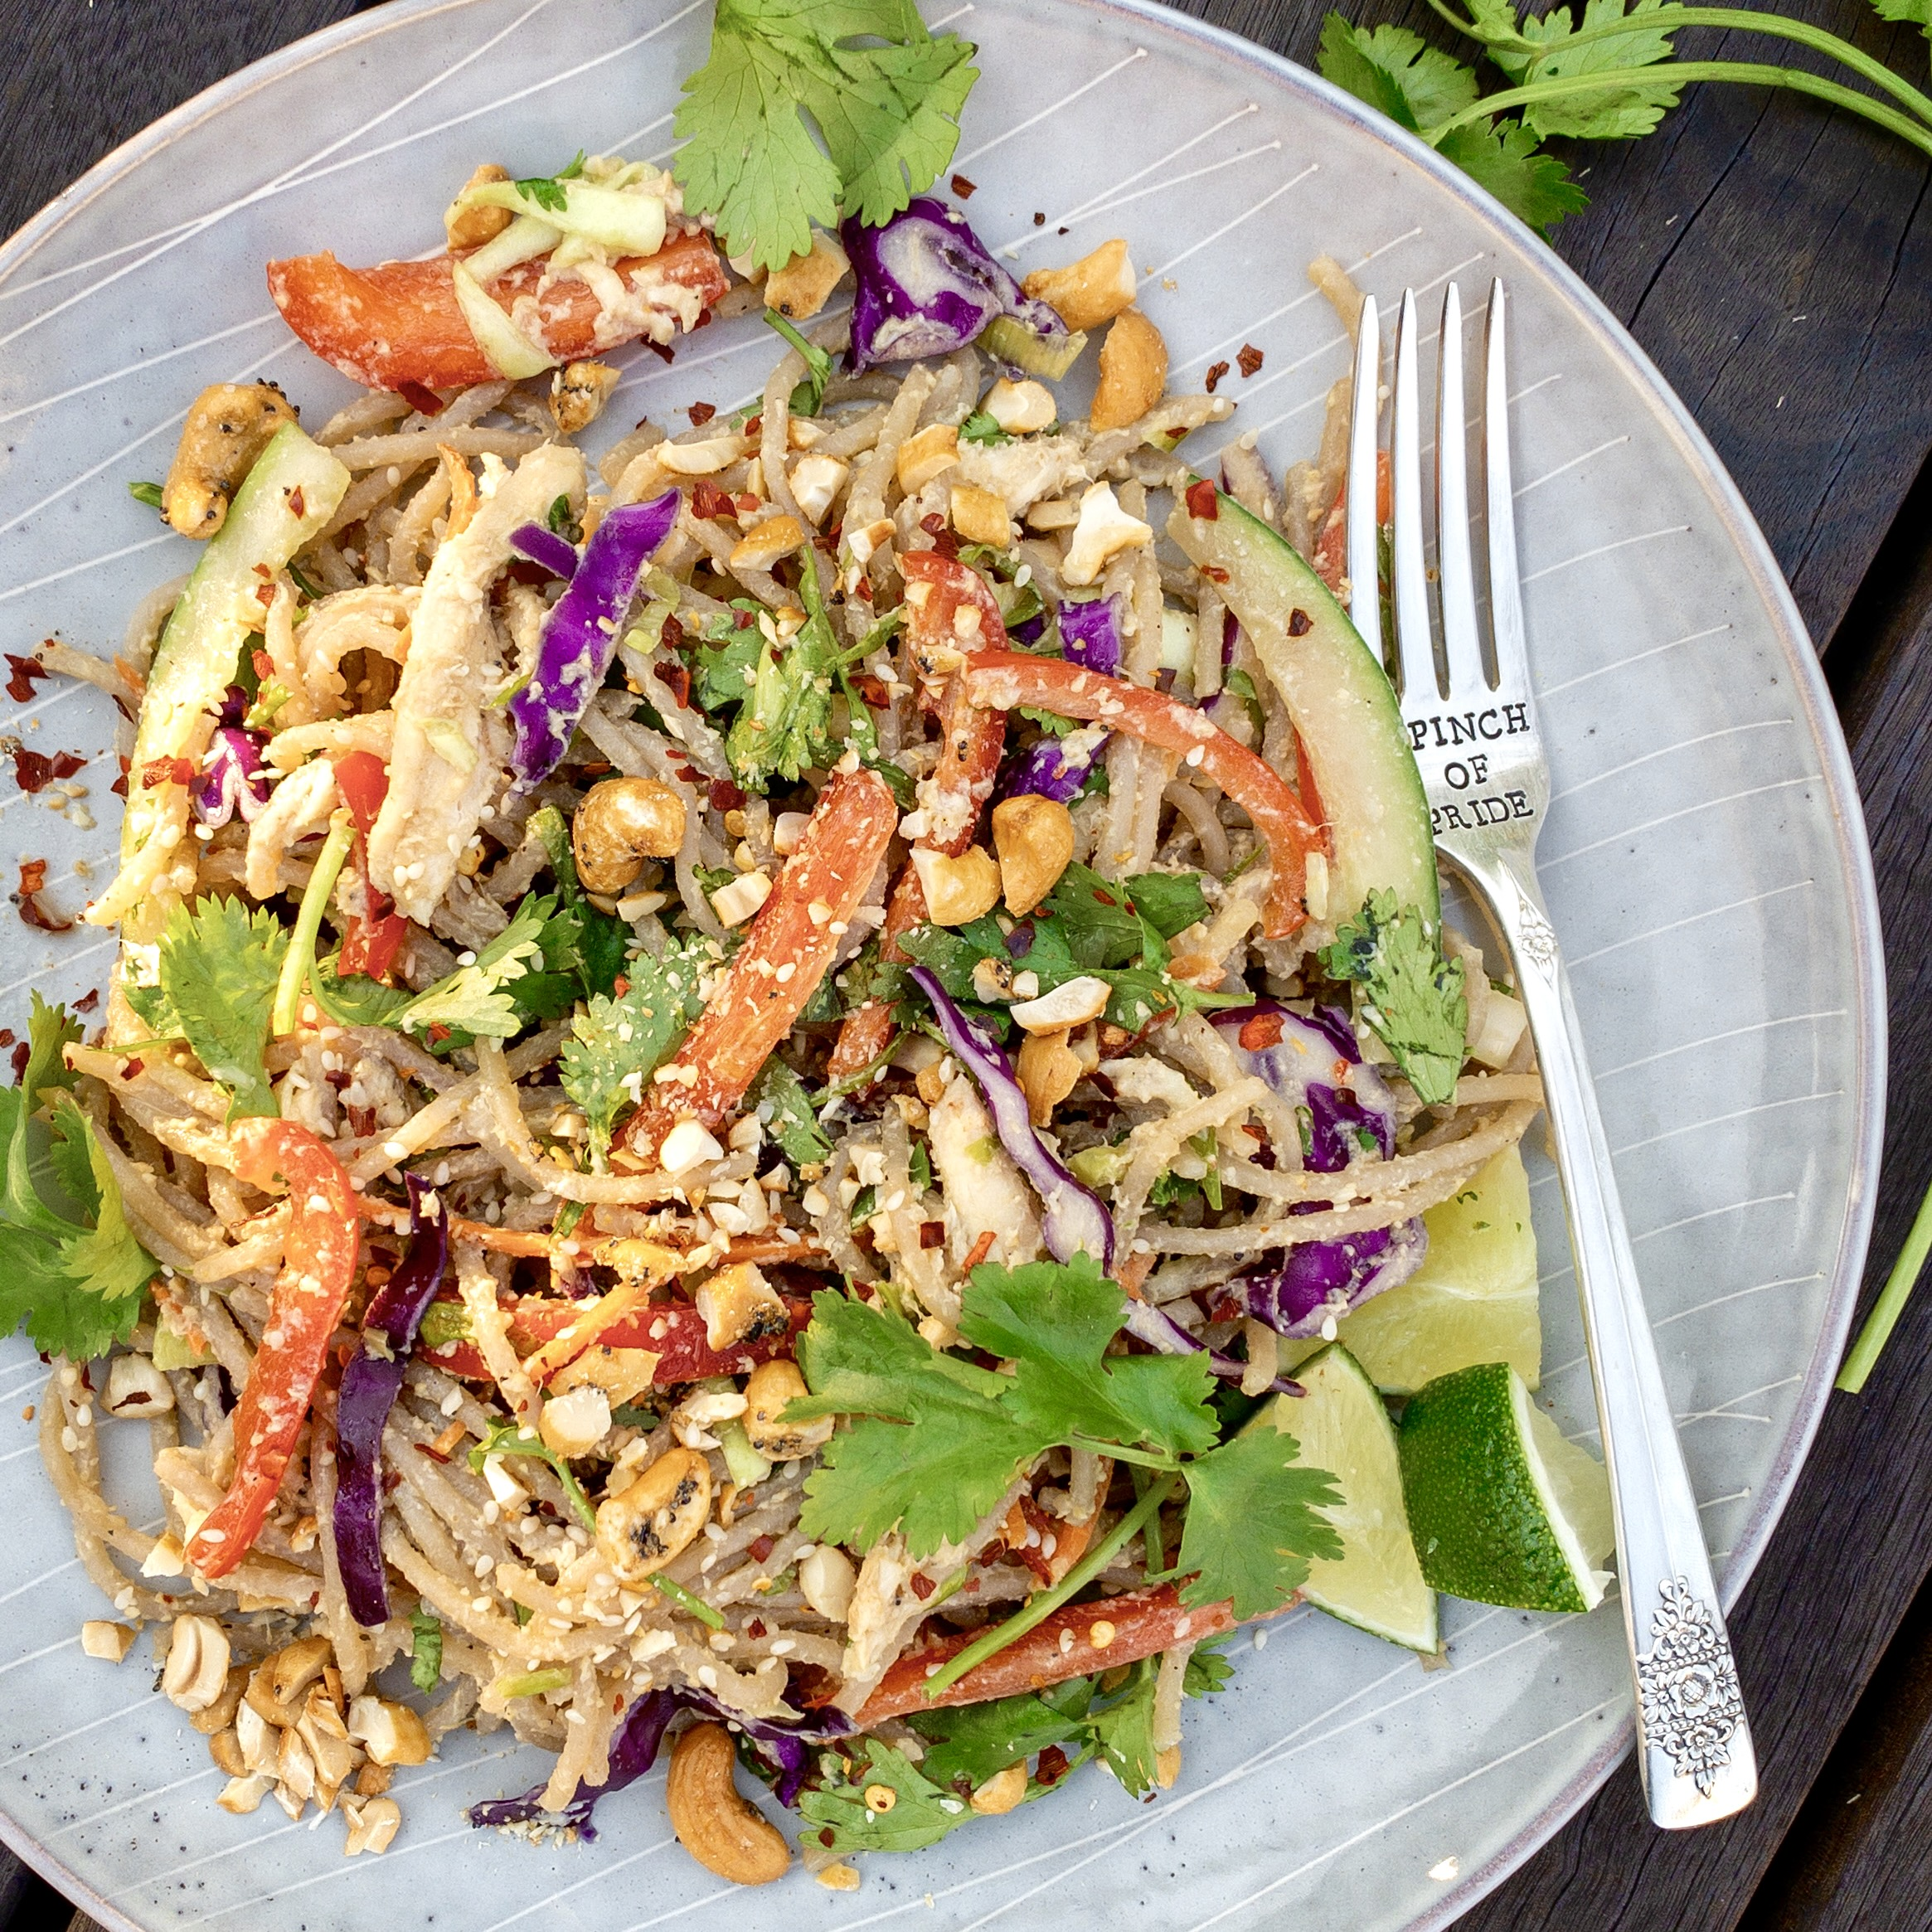 """Gluten-free cold noodles mixed with red bell pepper, thinly sliced cucumbers, coleslaw mix, cilantro and crushed cashews. Served on a gray plate with fork that says """"A Pinch of Pride"""""""